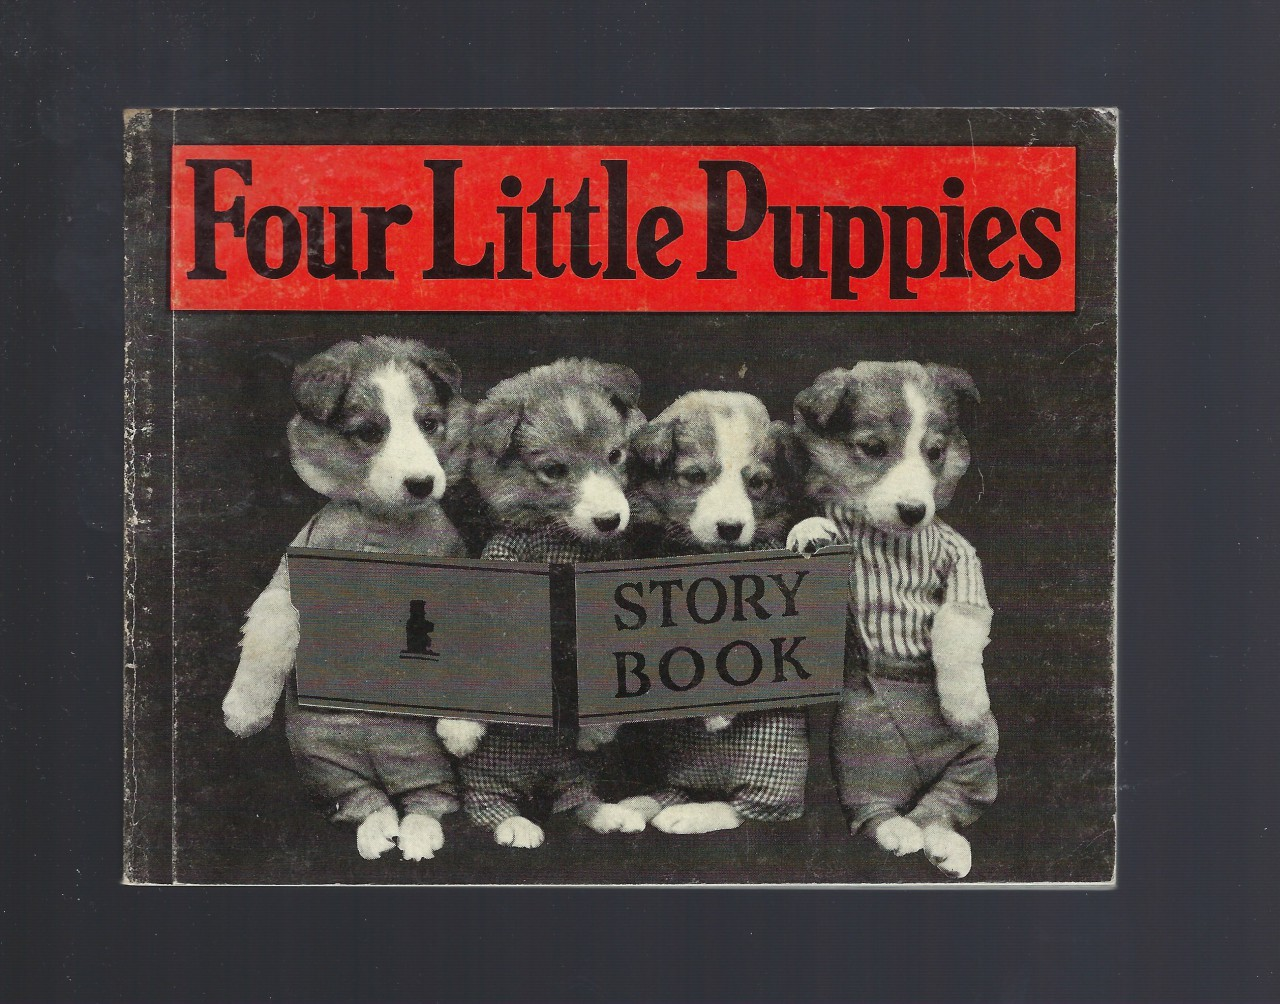 Four Little Puppies Story Book, Frees, Harry Whittier